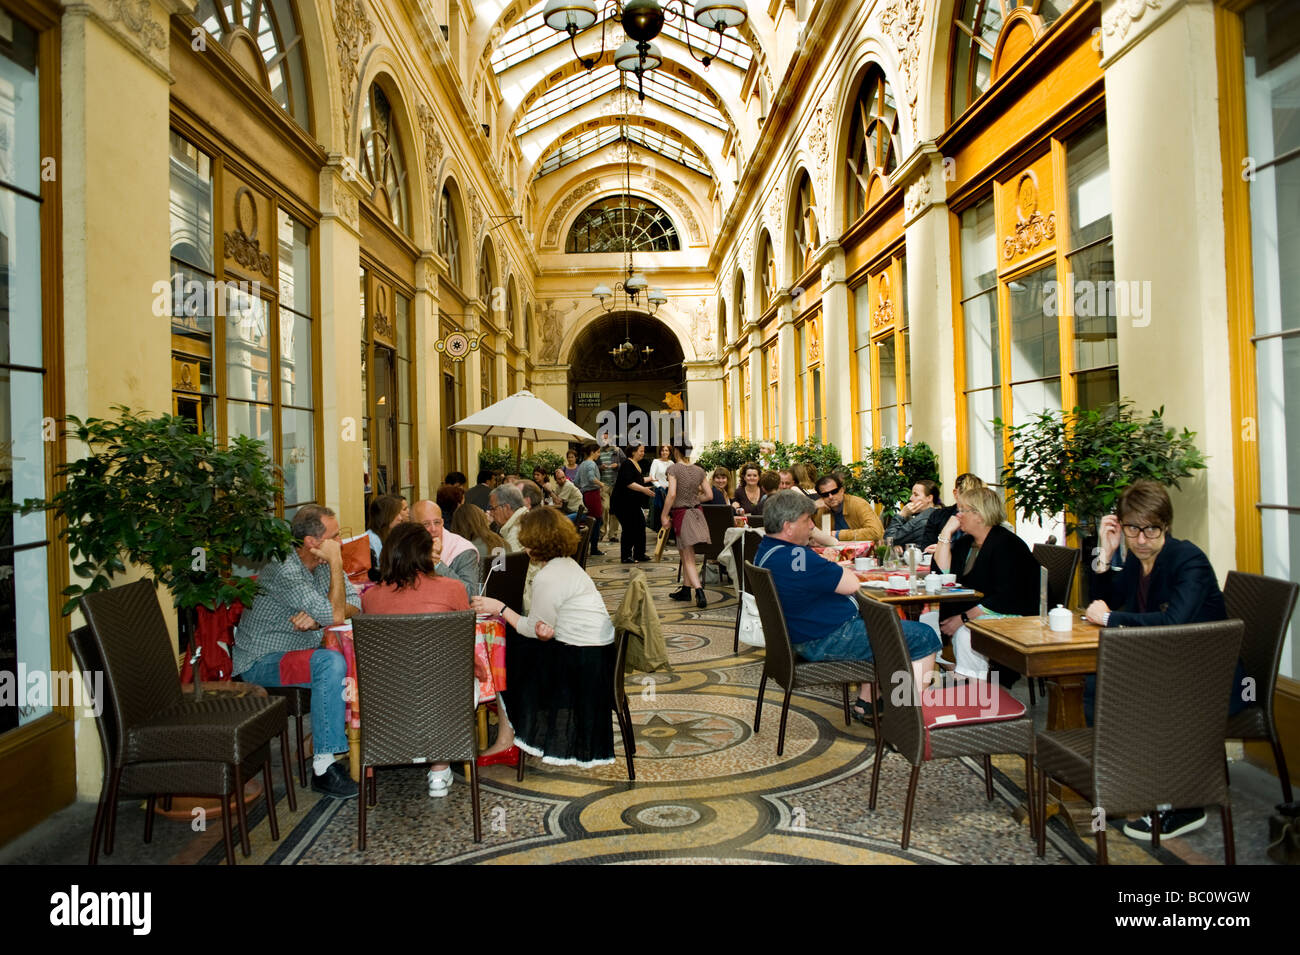 Paris France, French Cafe, Bistro Restaurant, people Sharing Drinks on Crowded Terrace tables in 'Passage Vivienne' - Stock Image